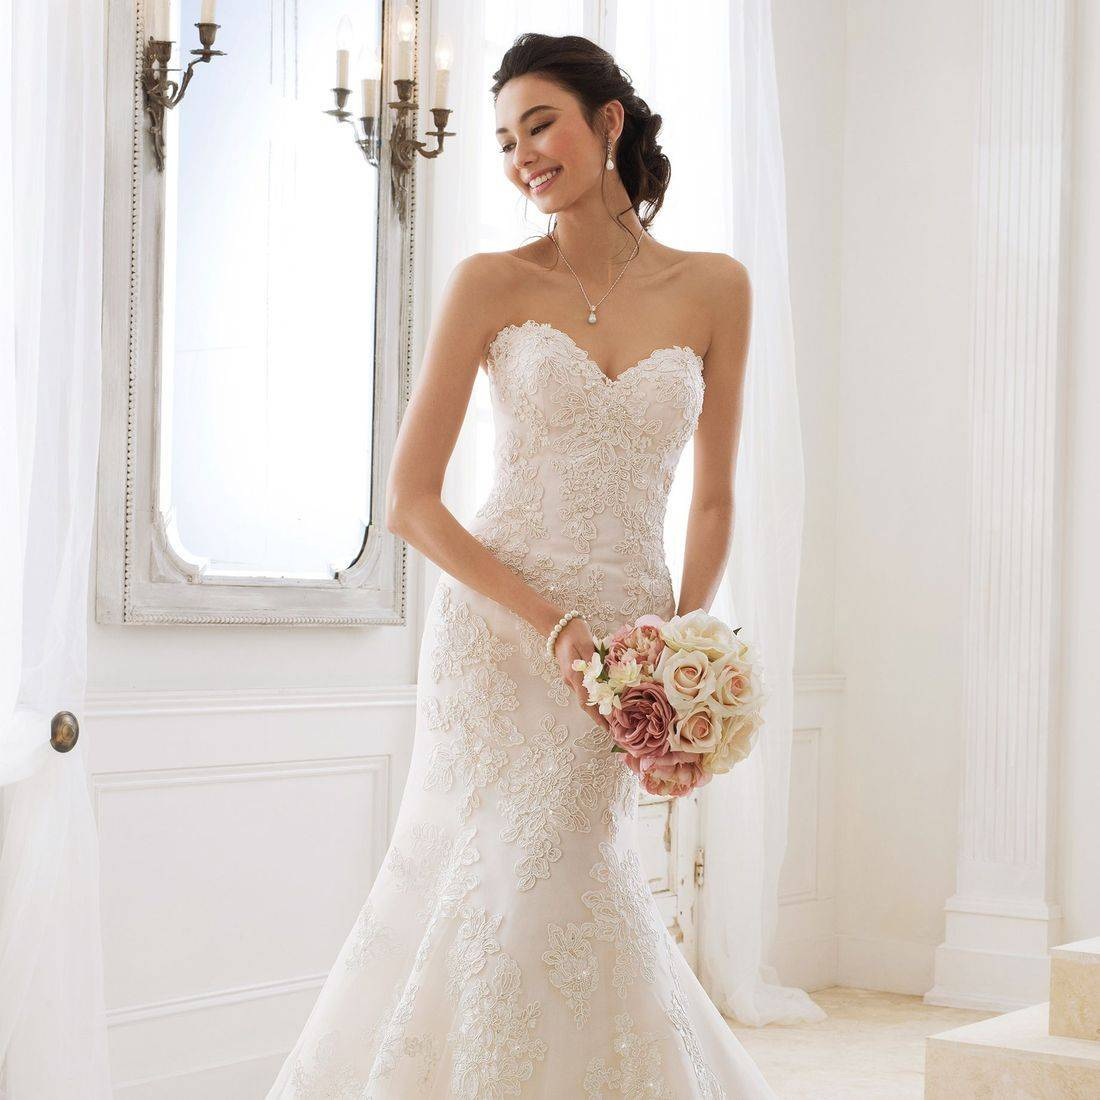 Sophia Tolli, Sophia Tolli wedding dress, fit and flare wedding dress, lace wedding dress, corset back wedding dress